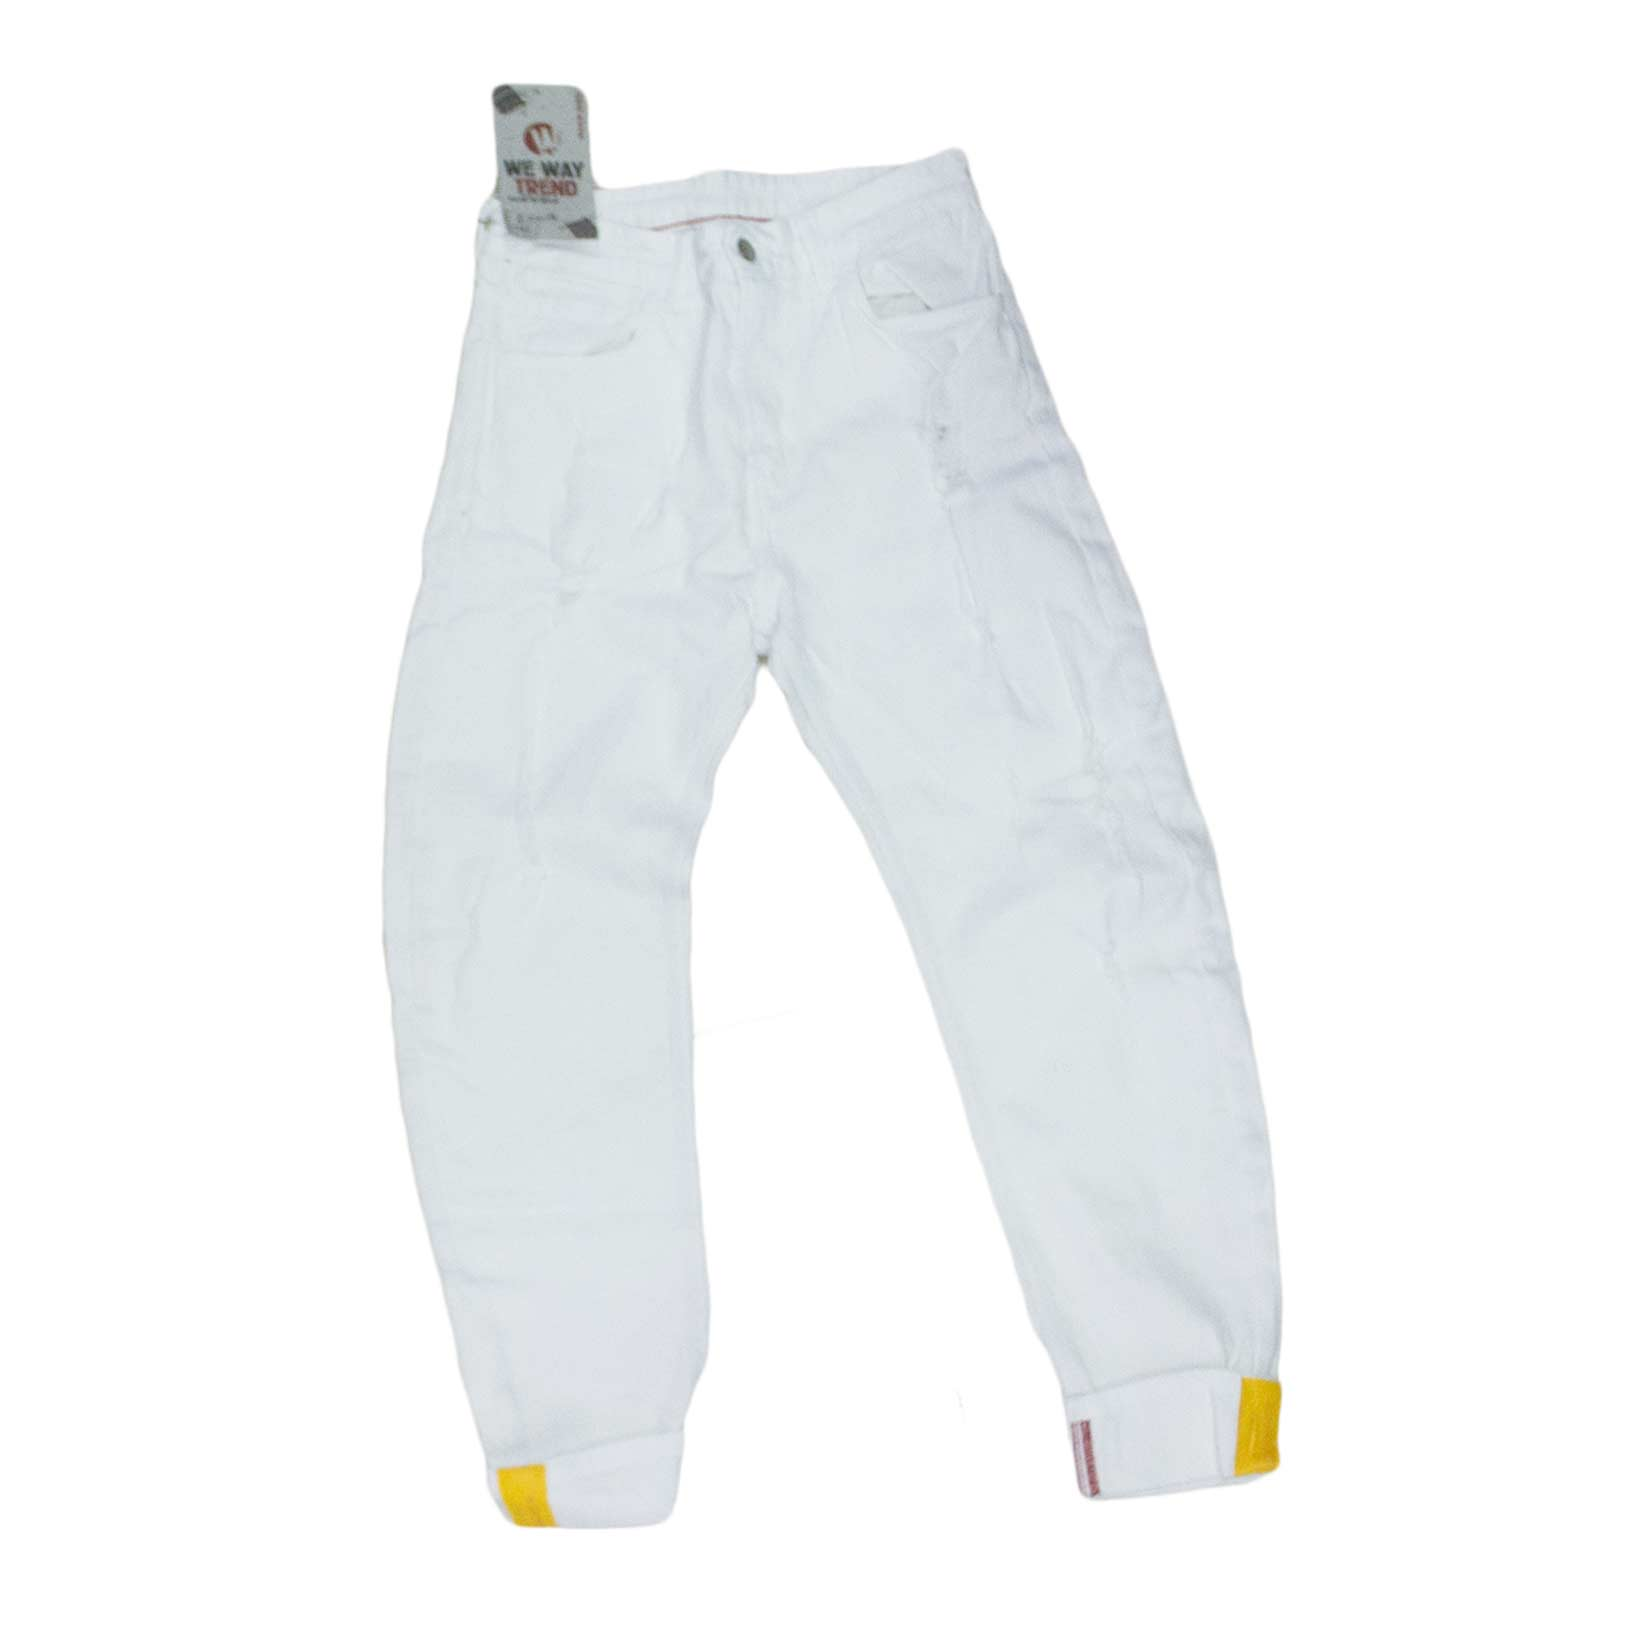 pantaloni uomo bianco white we way trend made in italy moda.